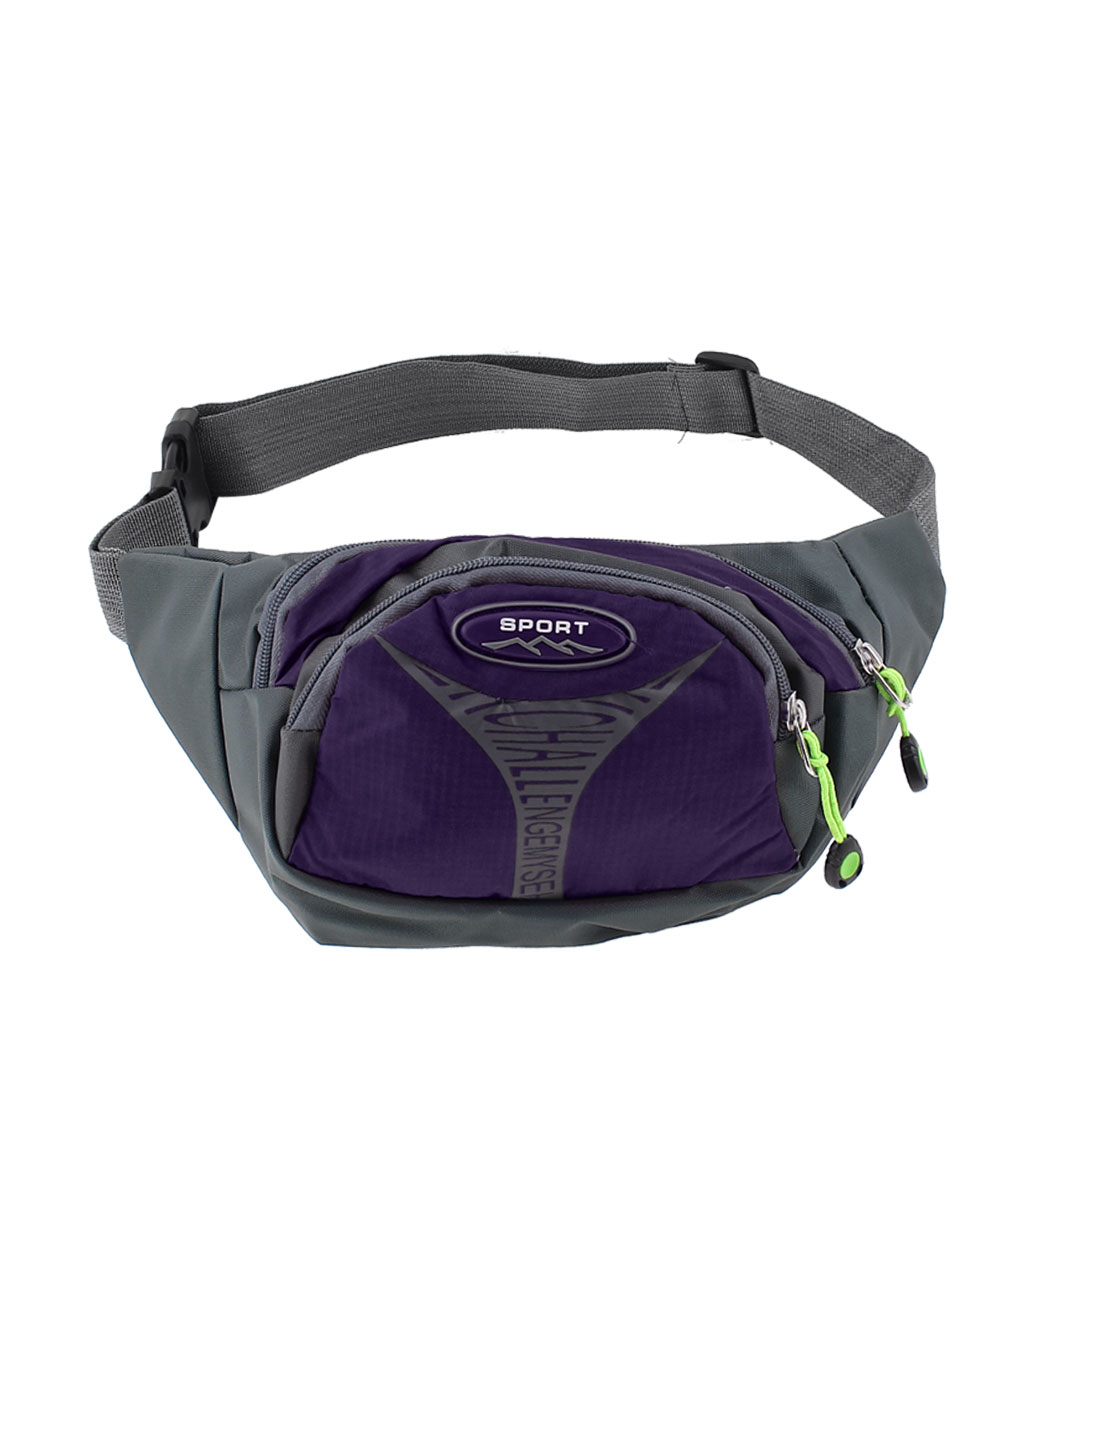 Travel Hiking Jogging Unisex Zipper Closure Belt Waist Bag Pack